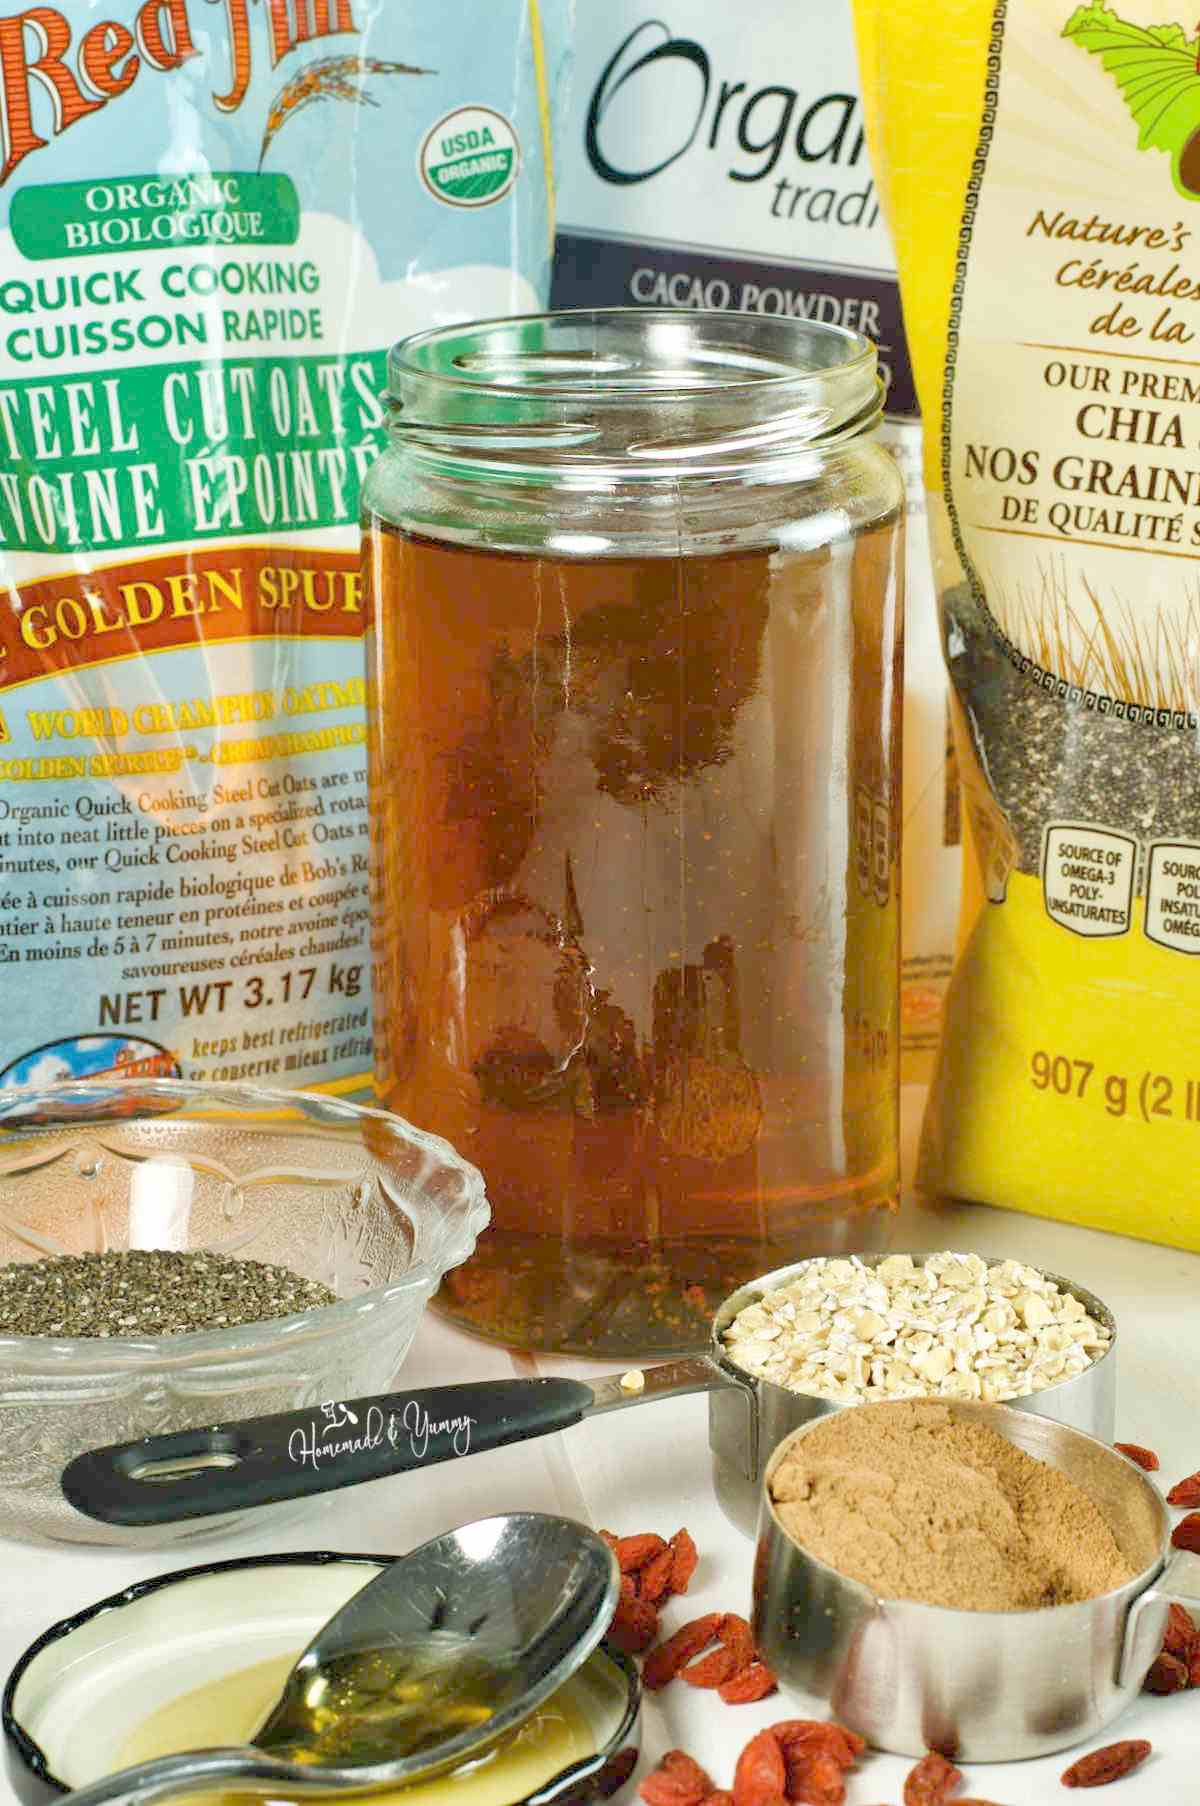 Ingredients to make overnight oatmeal.